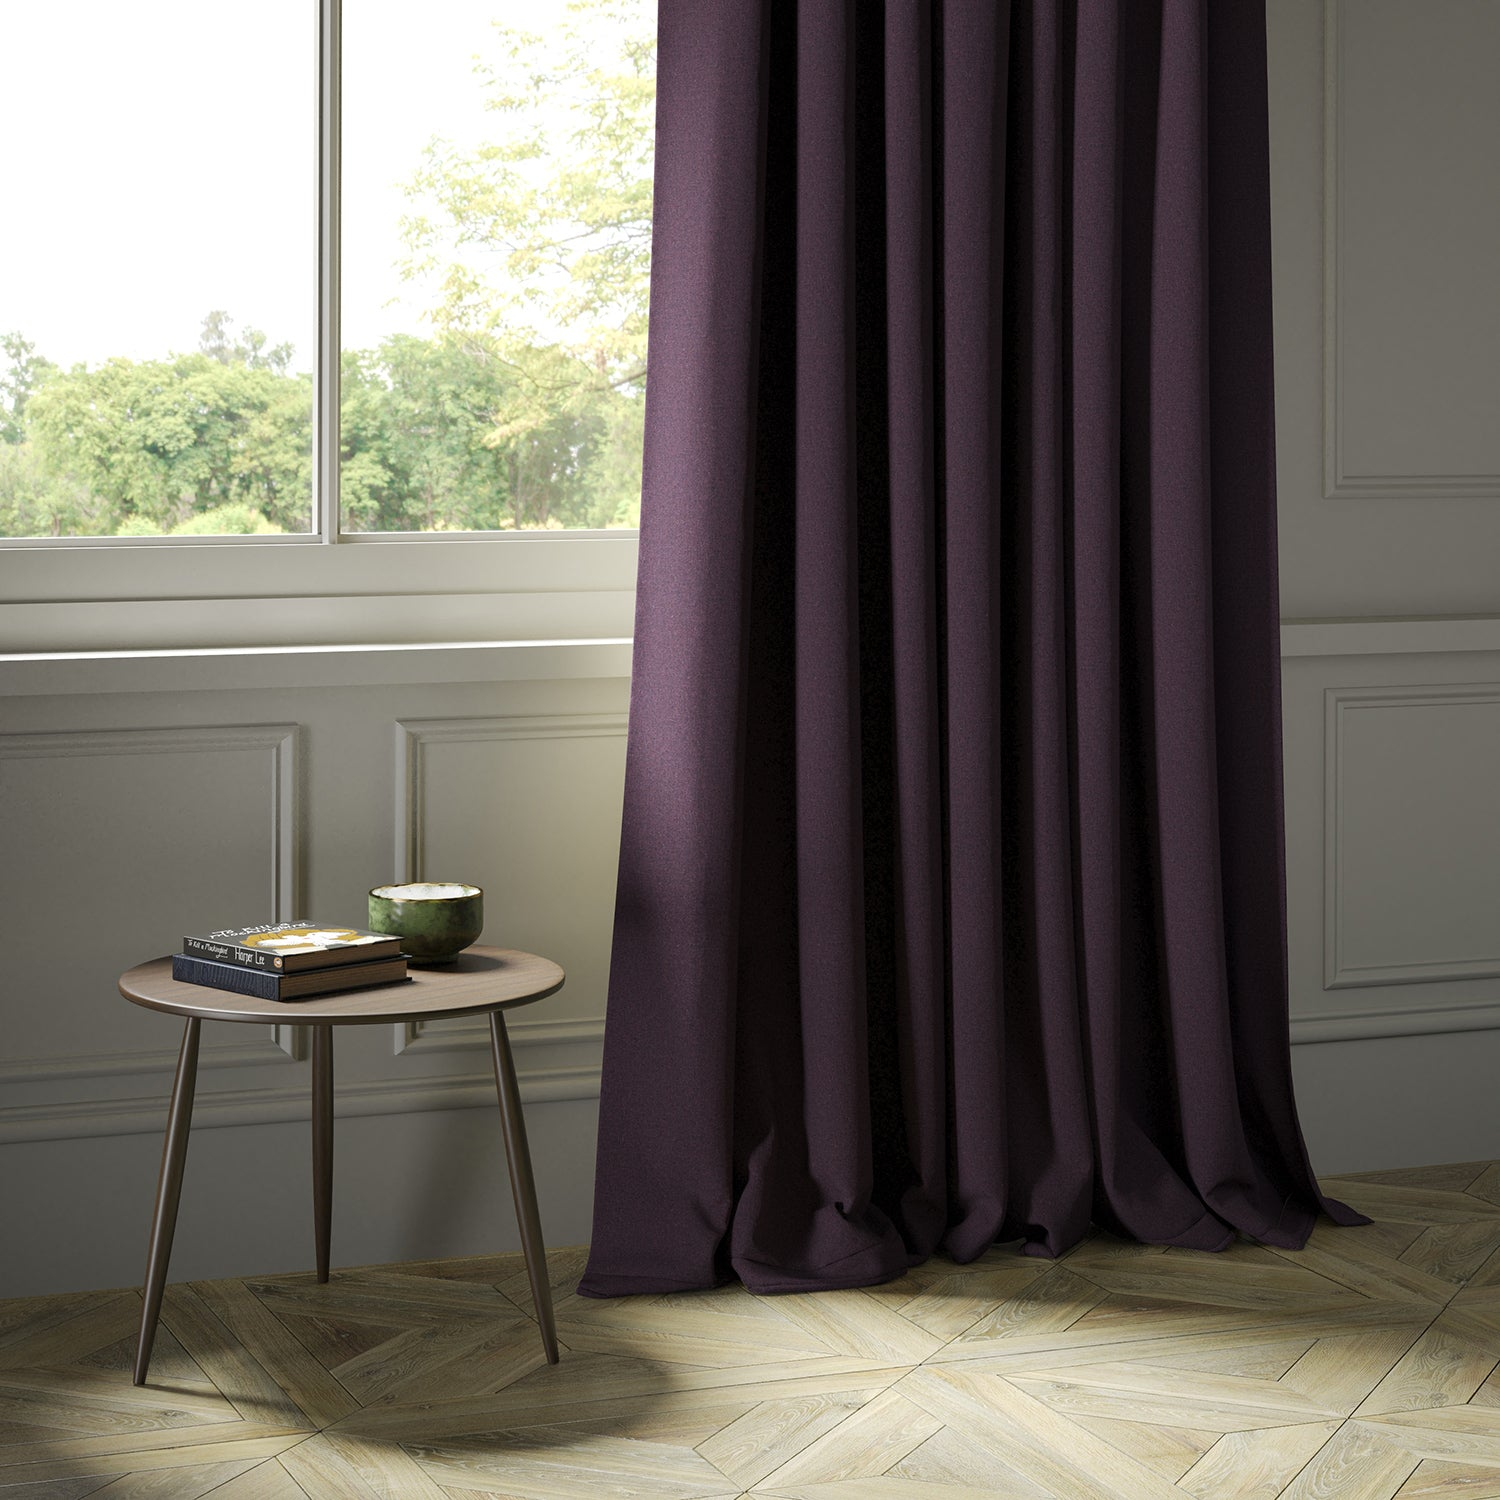 Curtains in a luxury Scottish plain purple wool fabric